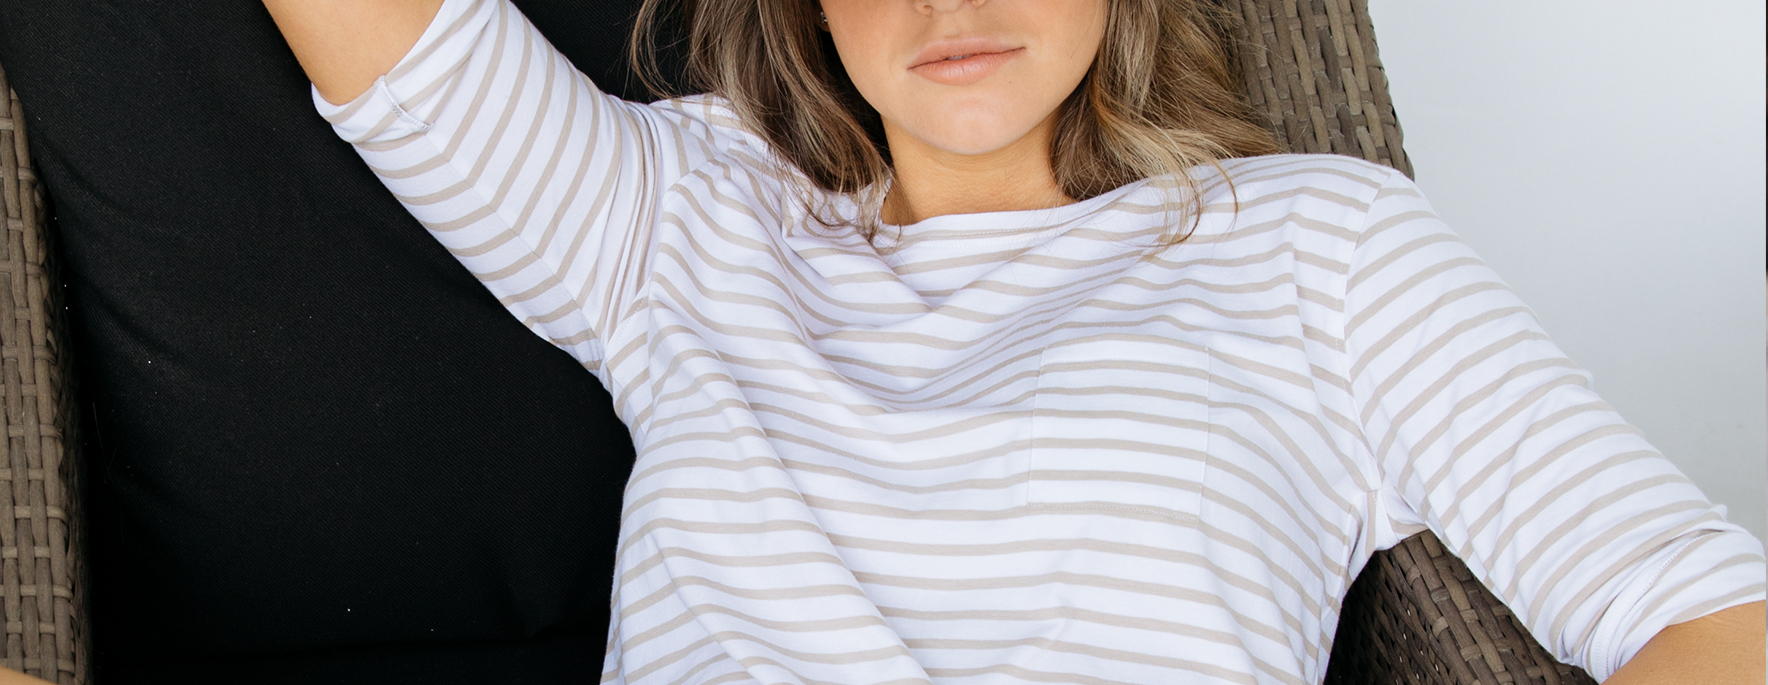 Women's sale tops and shirts - tasc Performance